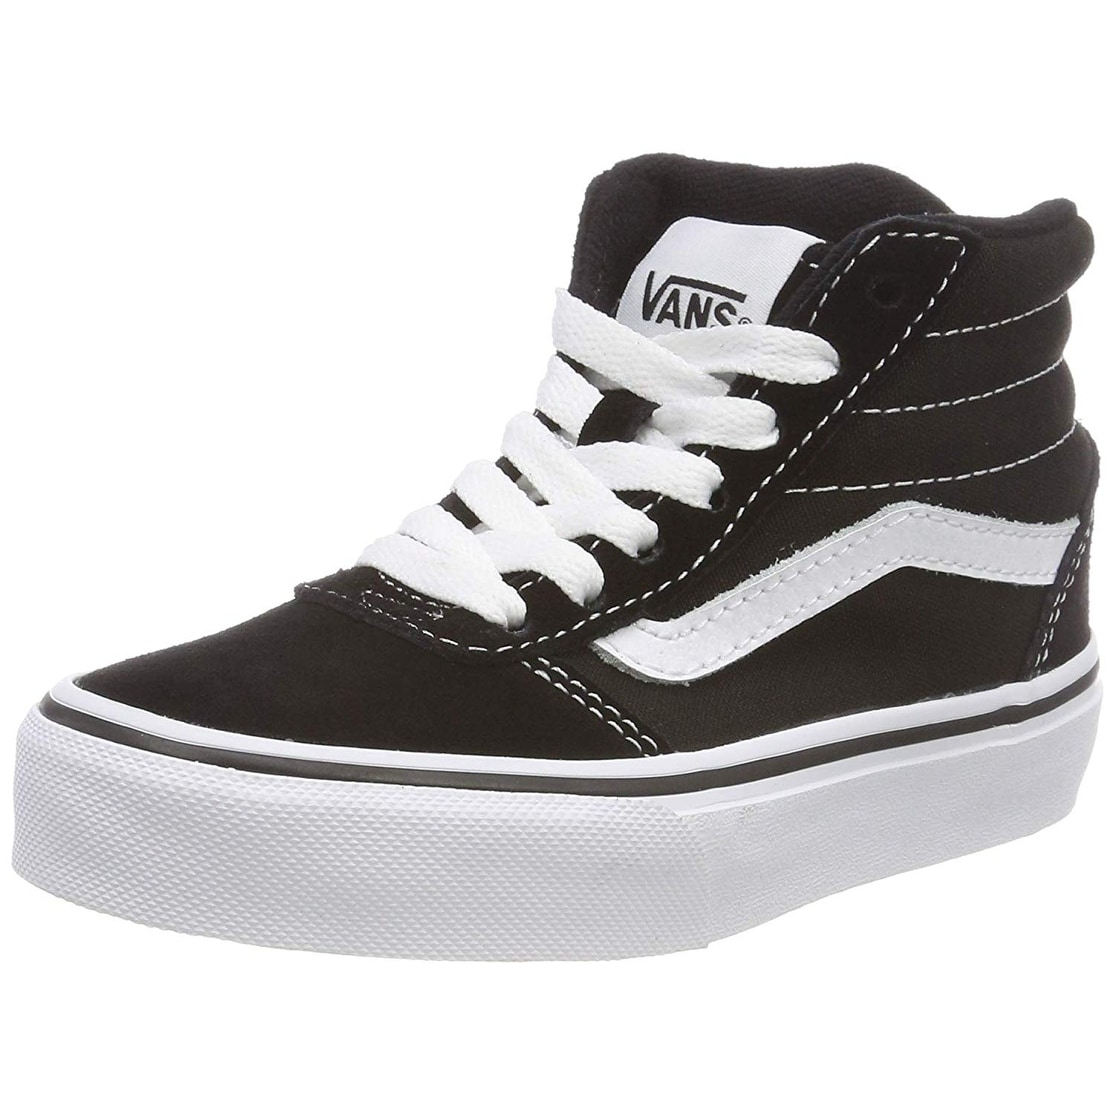 Vans Ward Hi Round Toe Canvas Skate Shoe, Black White, Size 7 Big Kid M